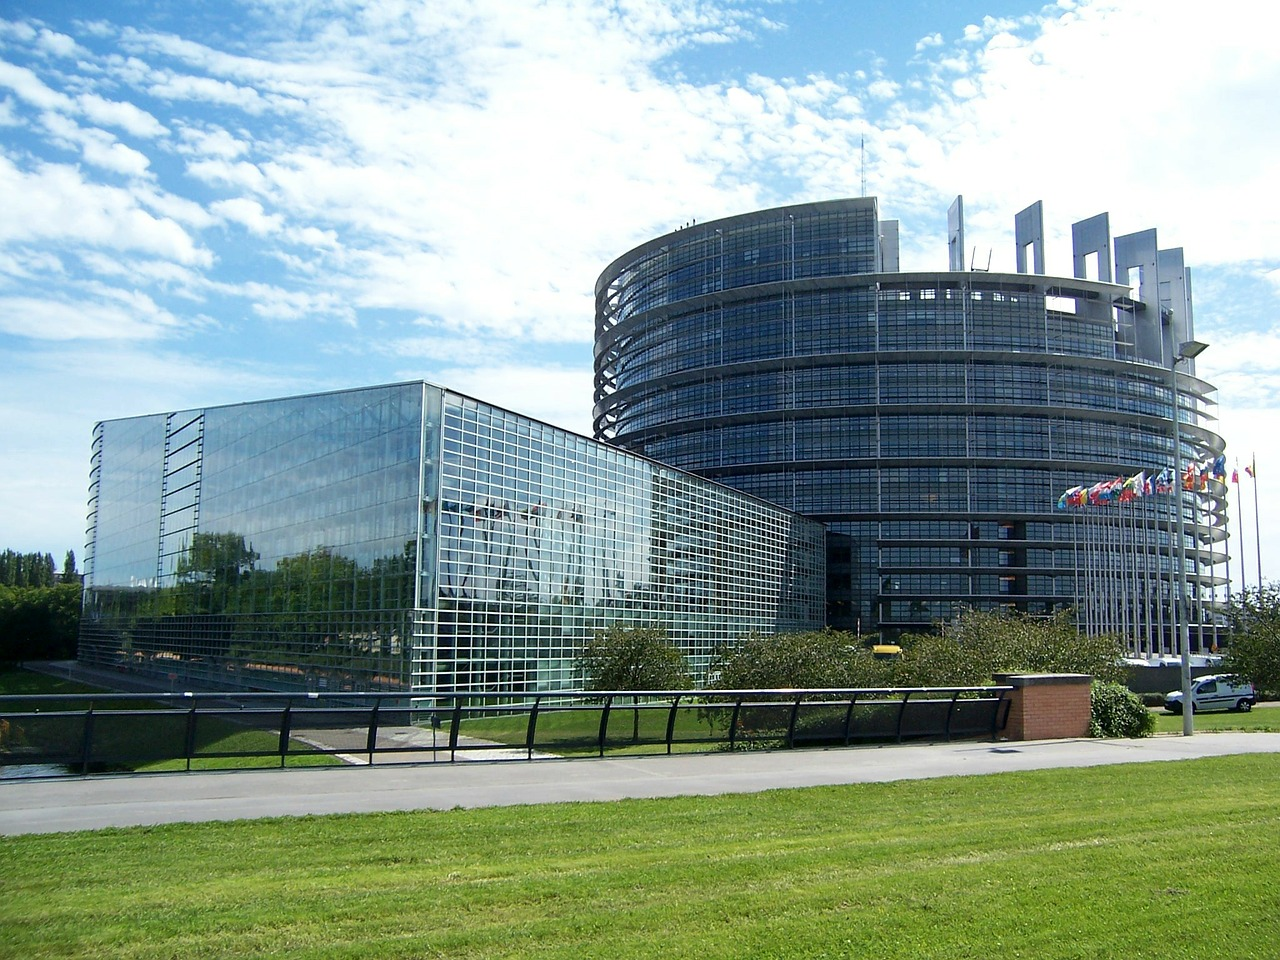 ITS European Congress in Strasbourg 2017 – only 3 months away